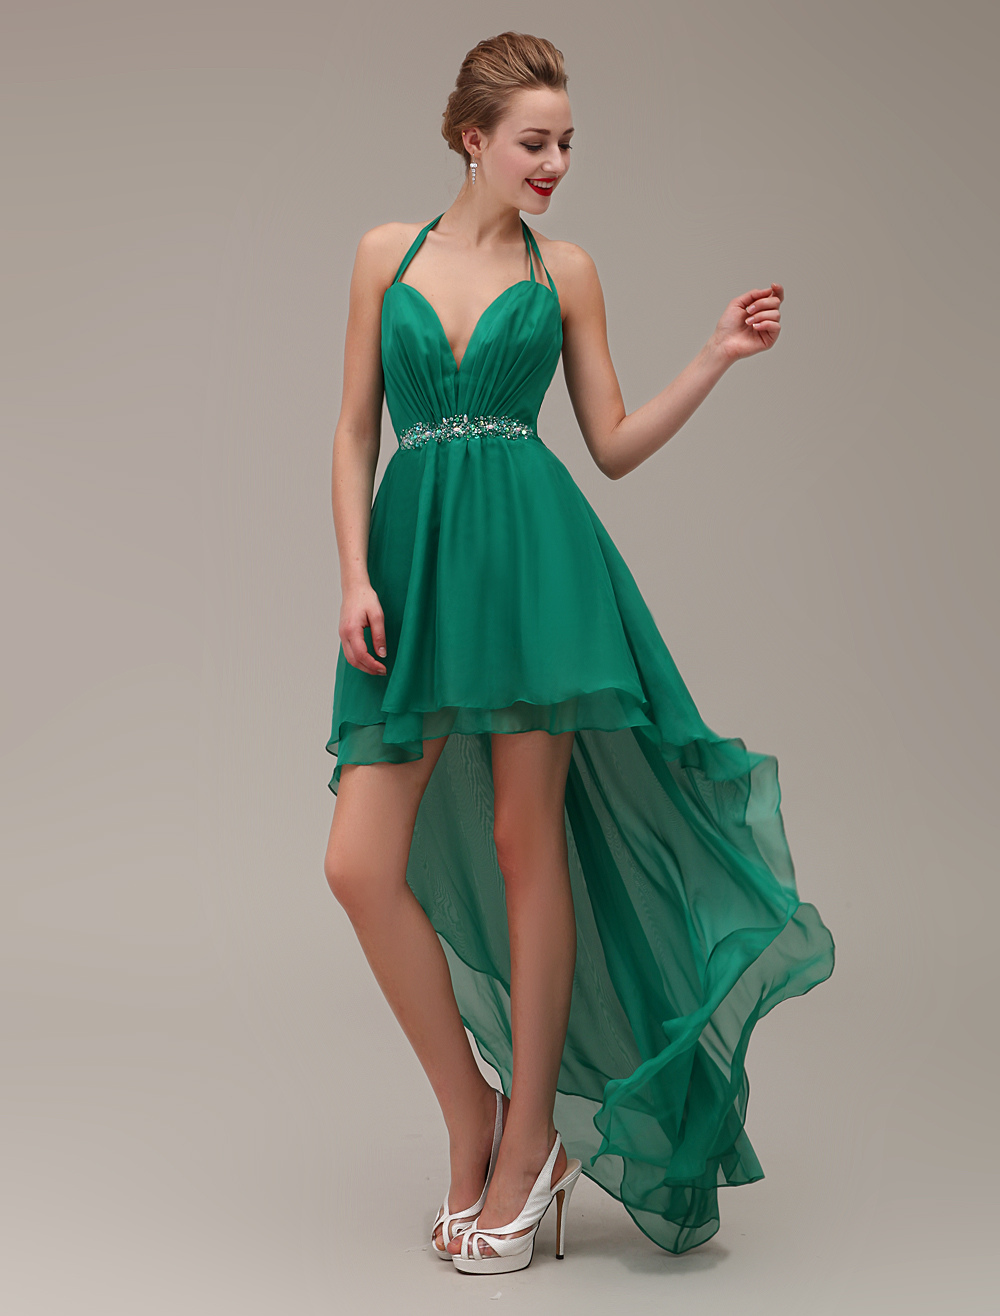 Halter Deep-Sweetheart Neck Chiffon High-Low Design Two-layered Prom Dress With Beading and Rhinestone Milanoo